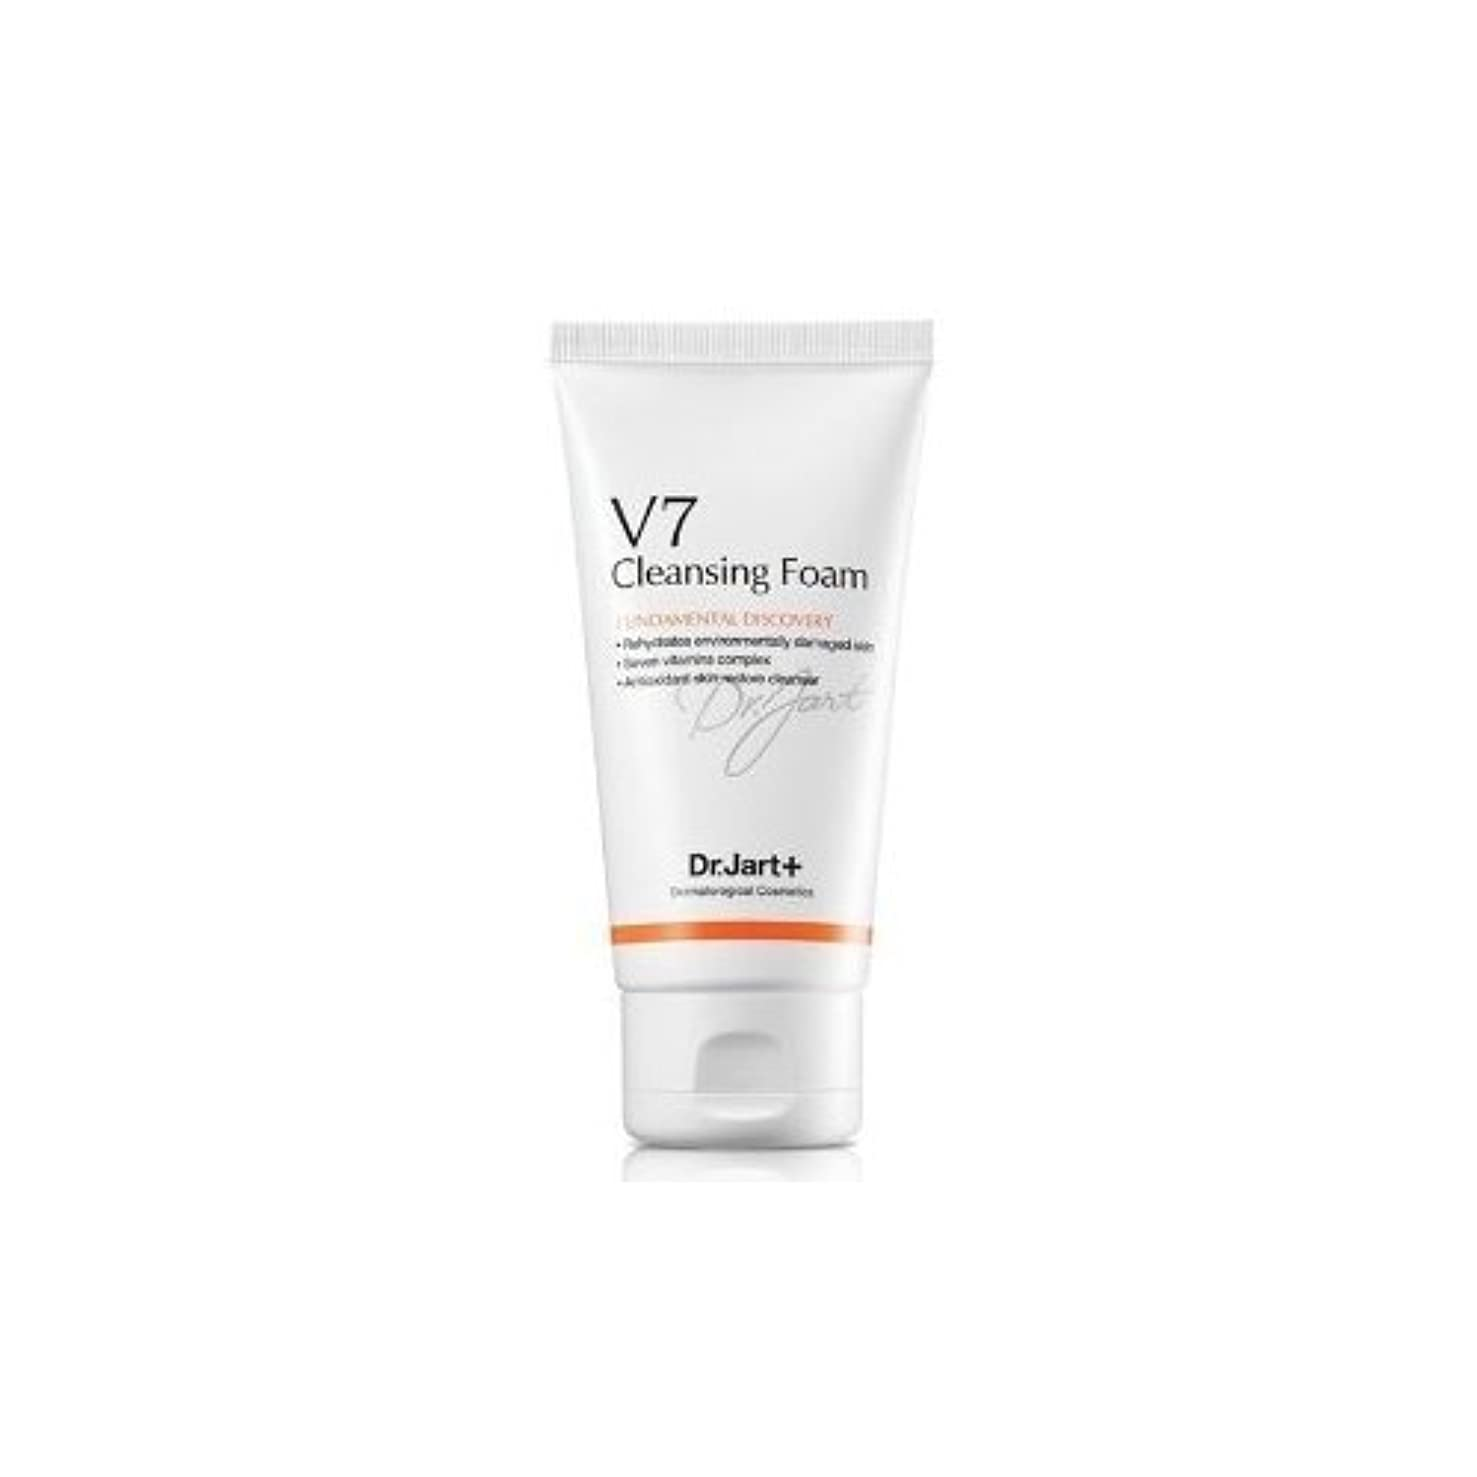 破産異常楽しませるDr. Jart V7 Cleansing Foam-3.4 oz.